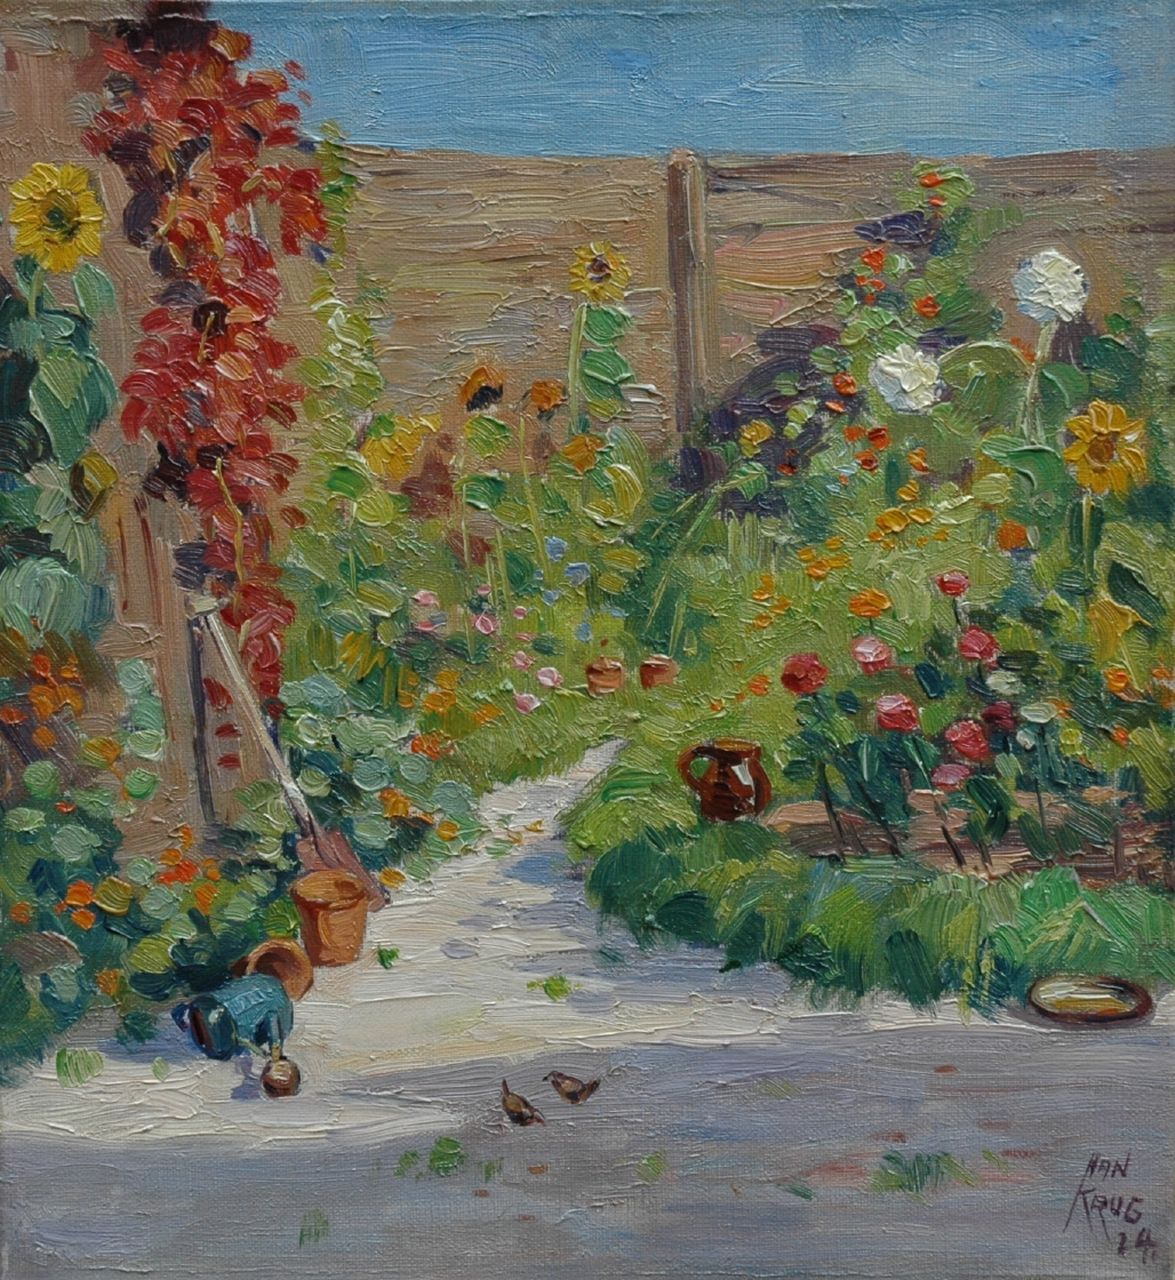 Han Krug | Flowering garden, 'Begoniastraat', The Hague, oil on canvas, 33.0 x 30.3 cm, signed l.r. and dated '24